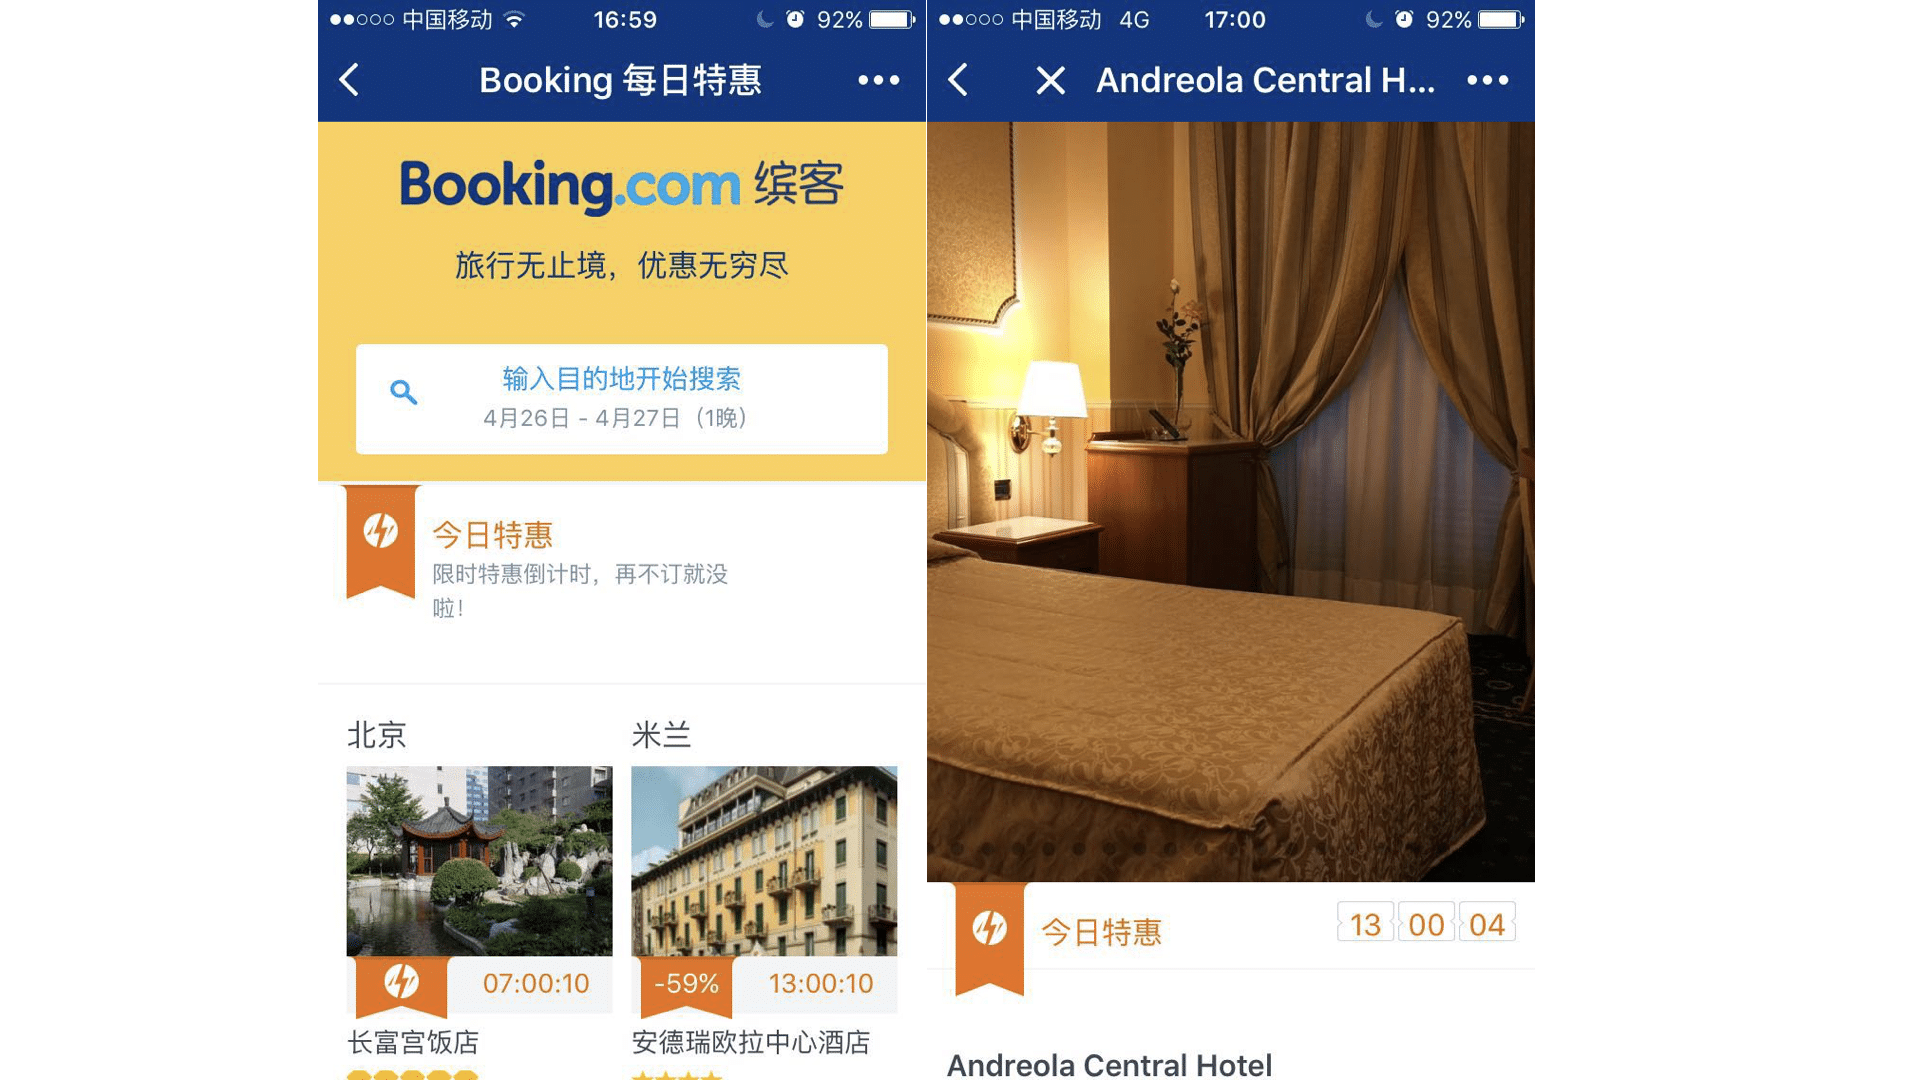 Booking.com - Wechat mini program